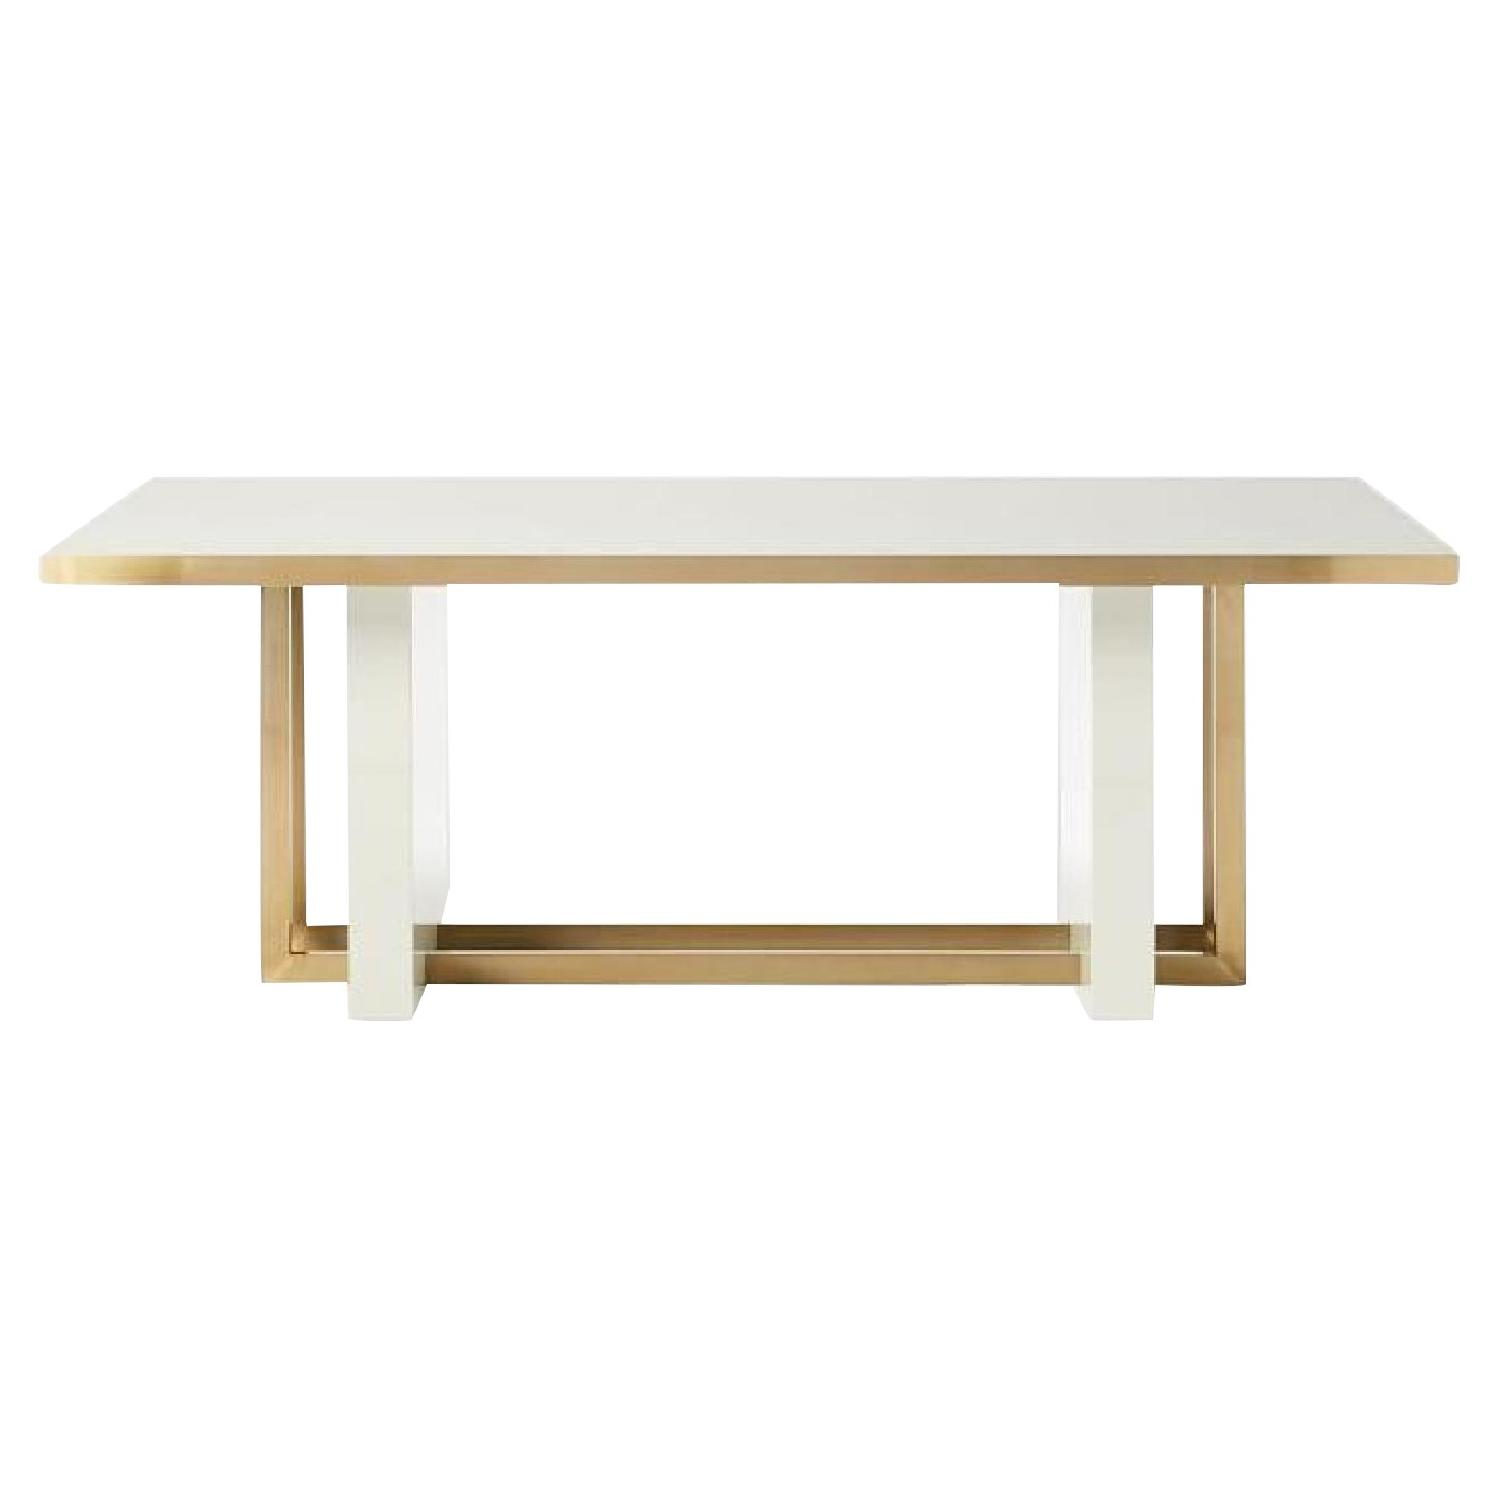 West Elm Whitney White Lacquer Tinsmi Dining Table